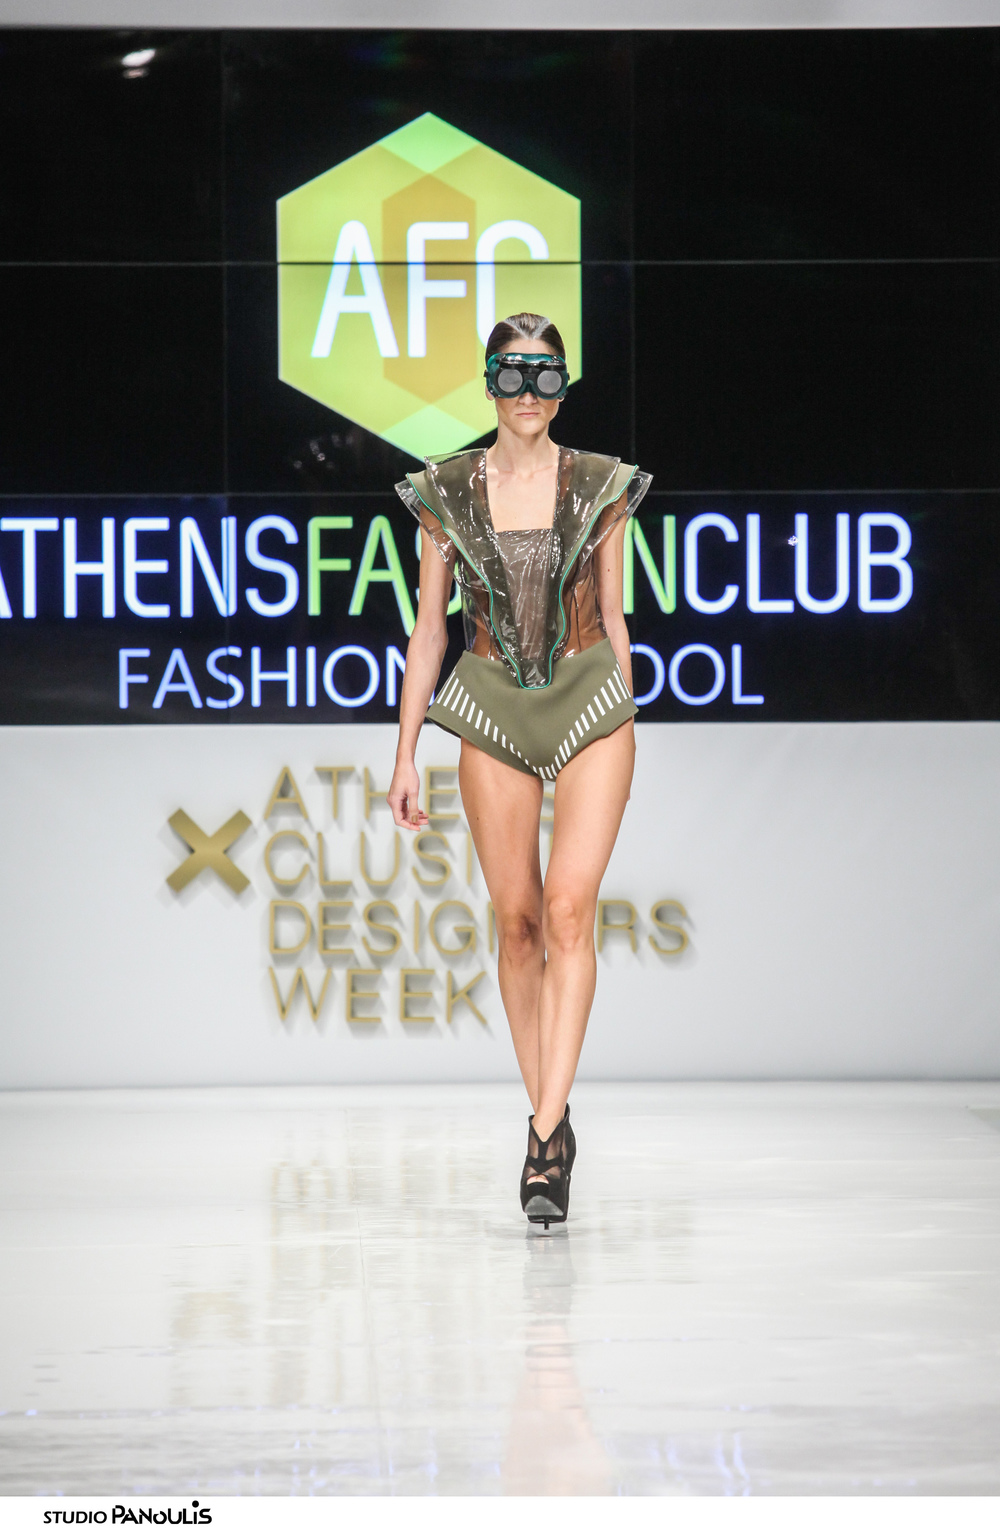 ATHENSFASHIONCLUB FASHION SCHOOL.jpg